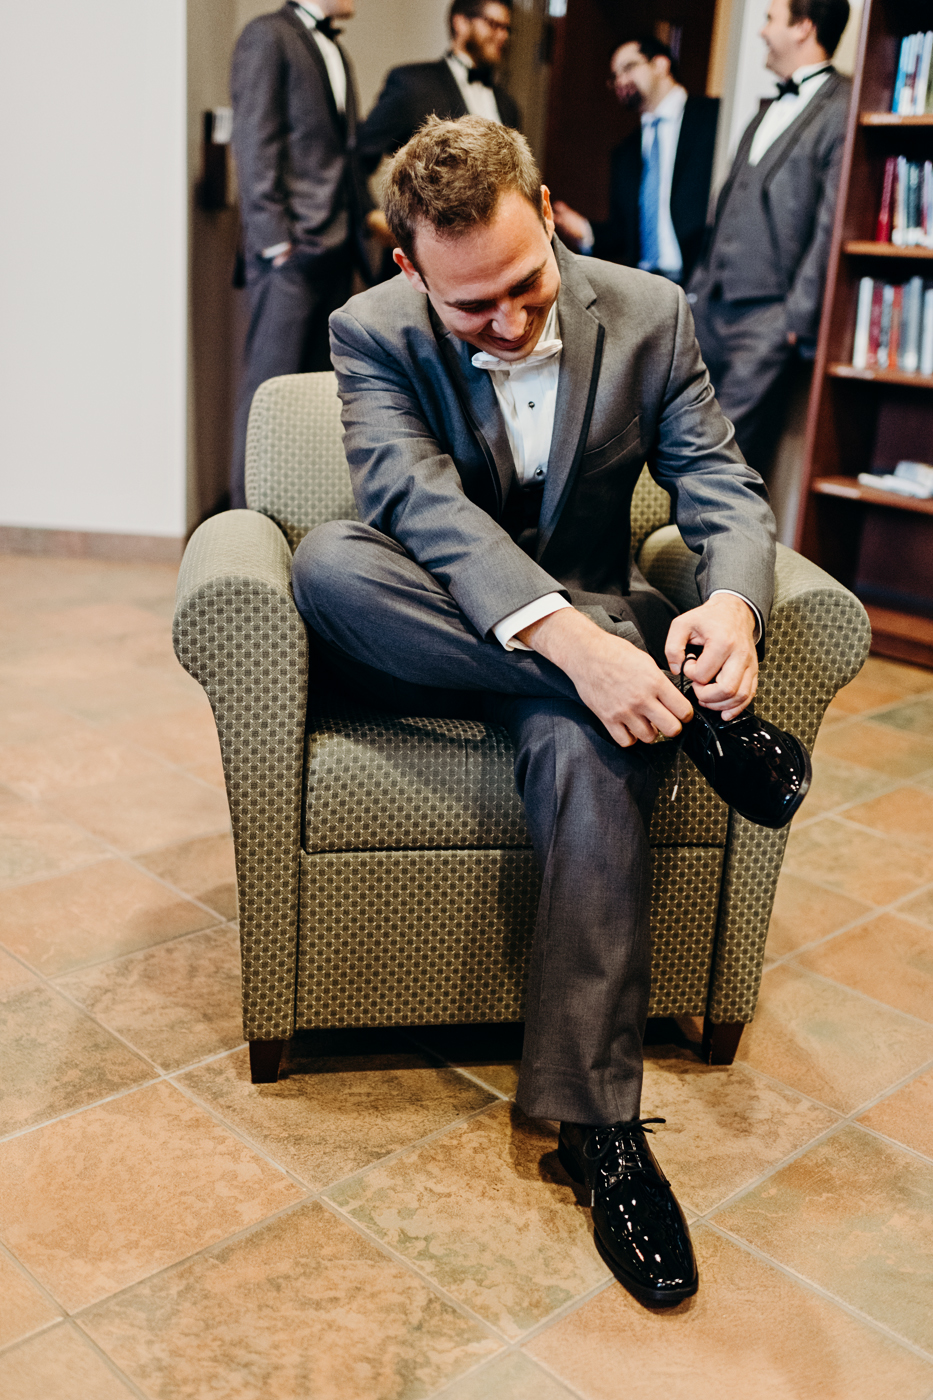 Groom ties his shoes